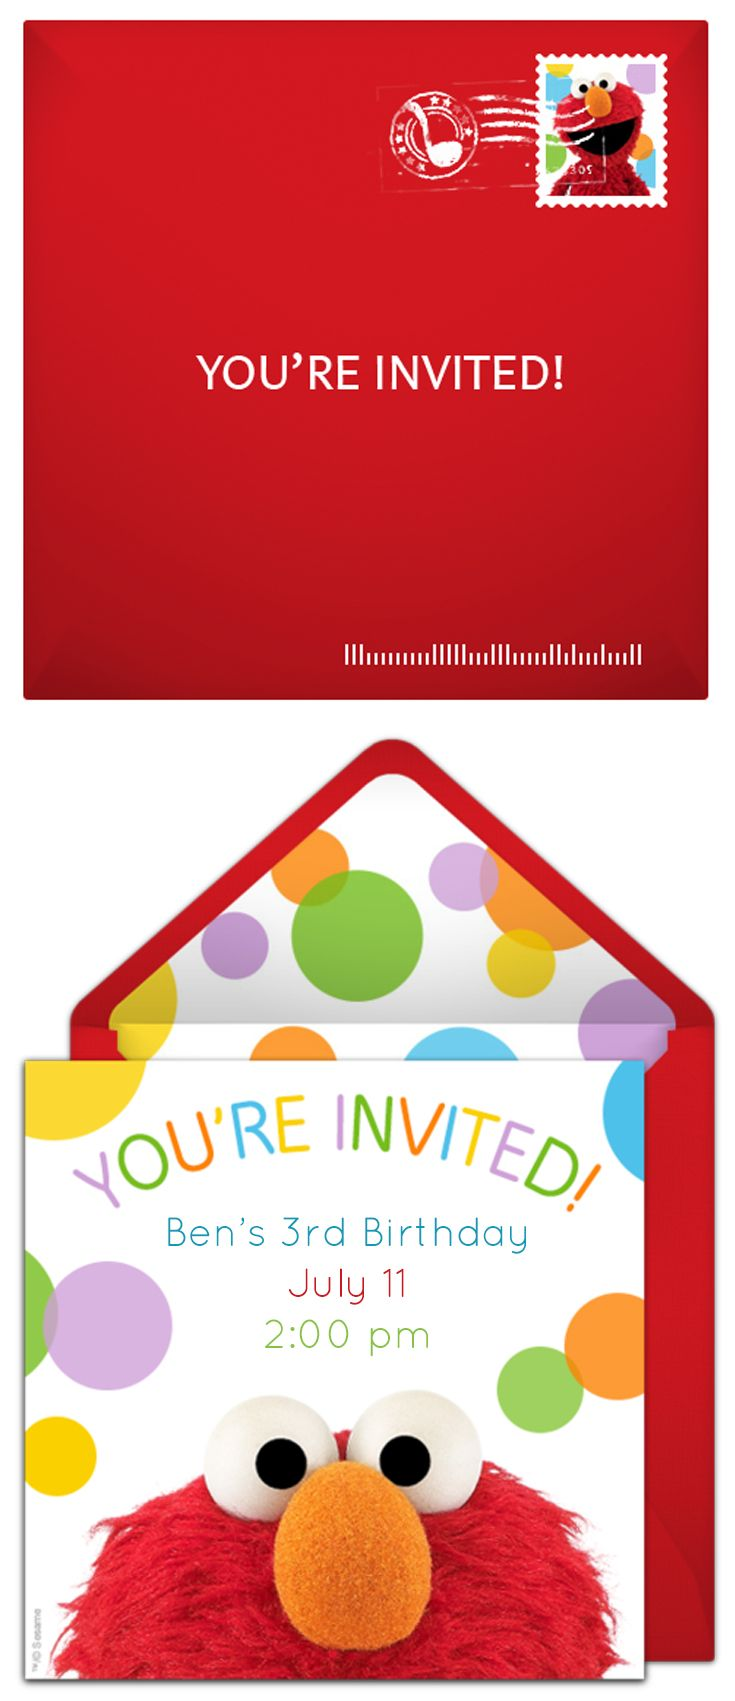 278 best Invitations images on Pinterest | Birthday party ideas ...